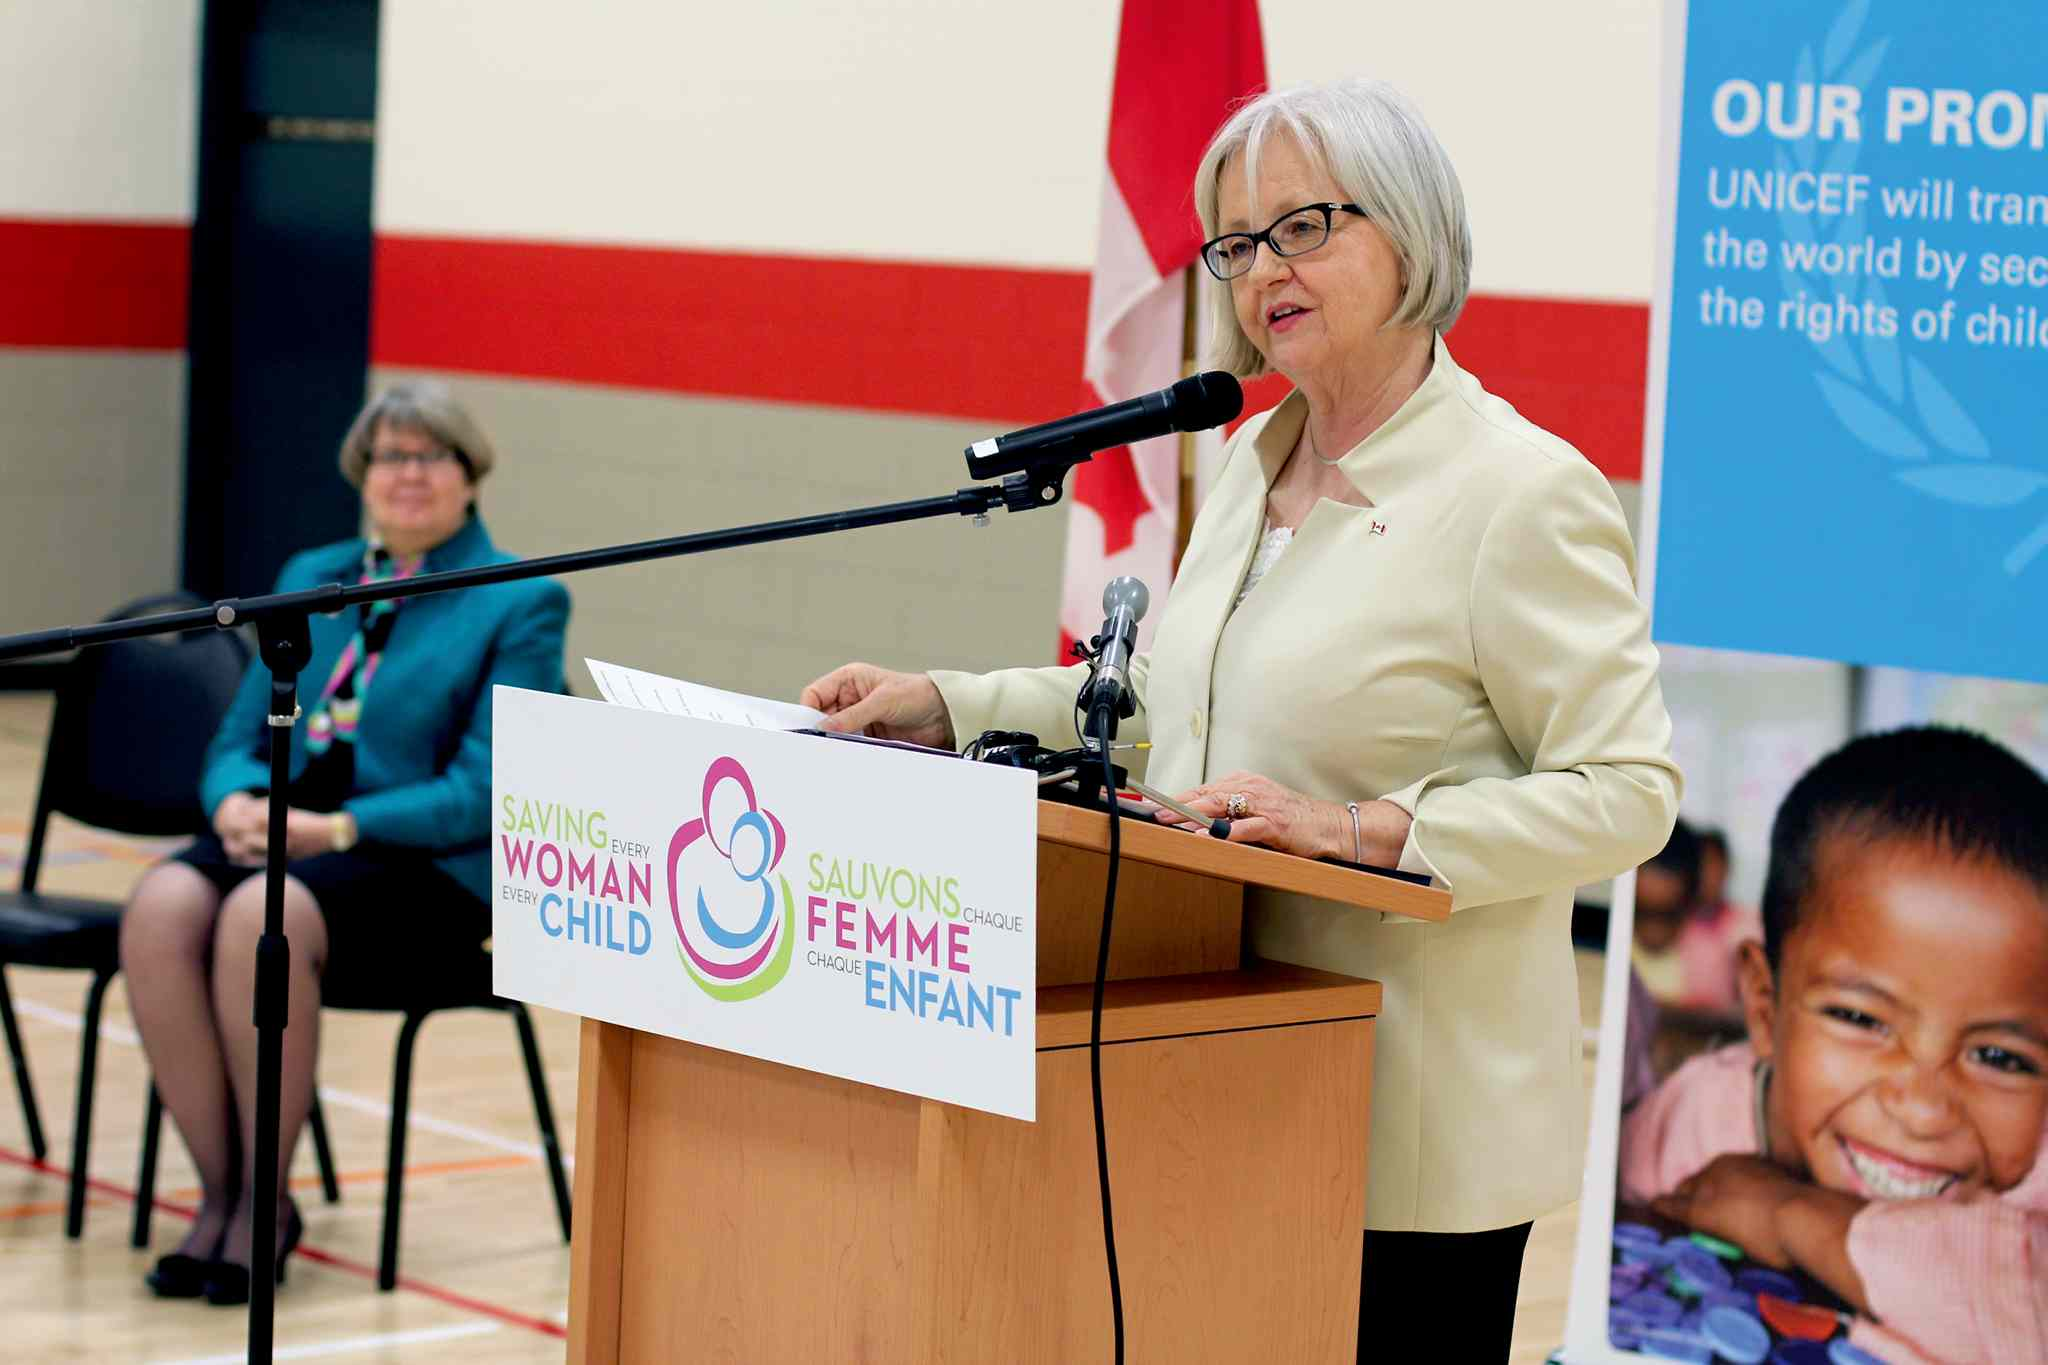 Joy Smith, MP for Kildonan-St. Paul, announced at Maple Leaf School that Canada will provide $7.5 million in funding to a UNICEF health education initiative in developing countries.